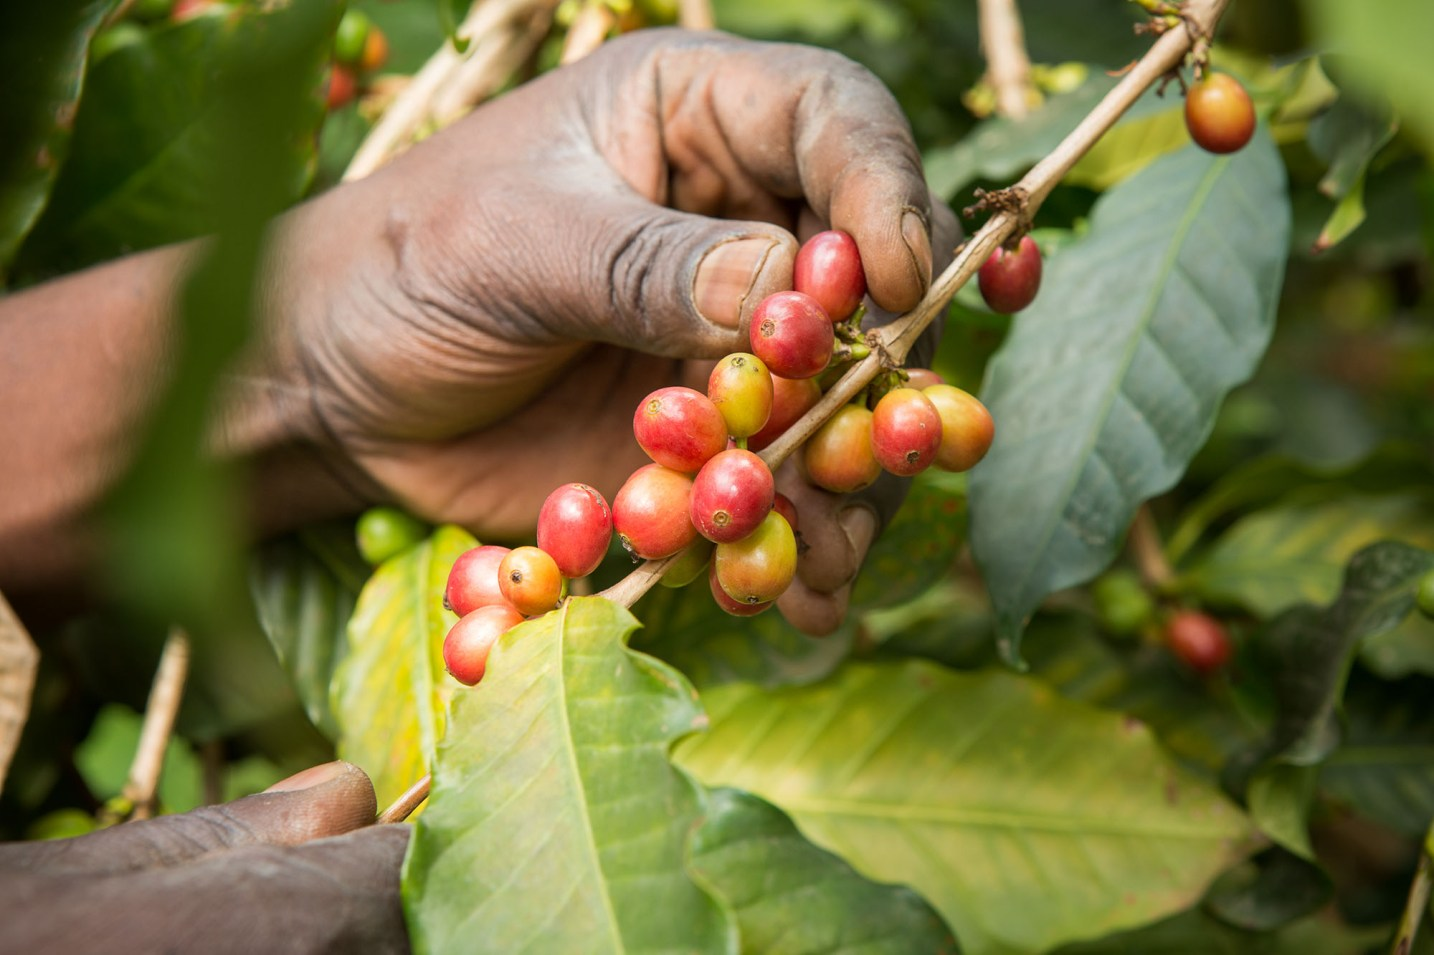 Coffee cultivation is the main source of livelihood in Bududa District, on the fertile foothills of Uganda's Mount Elgon.